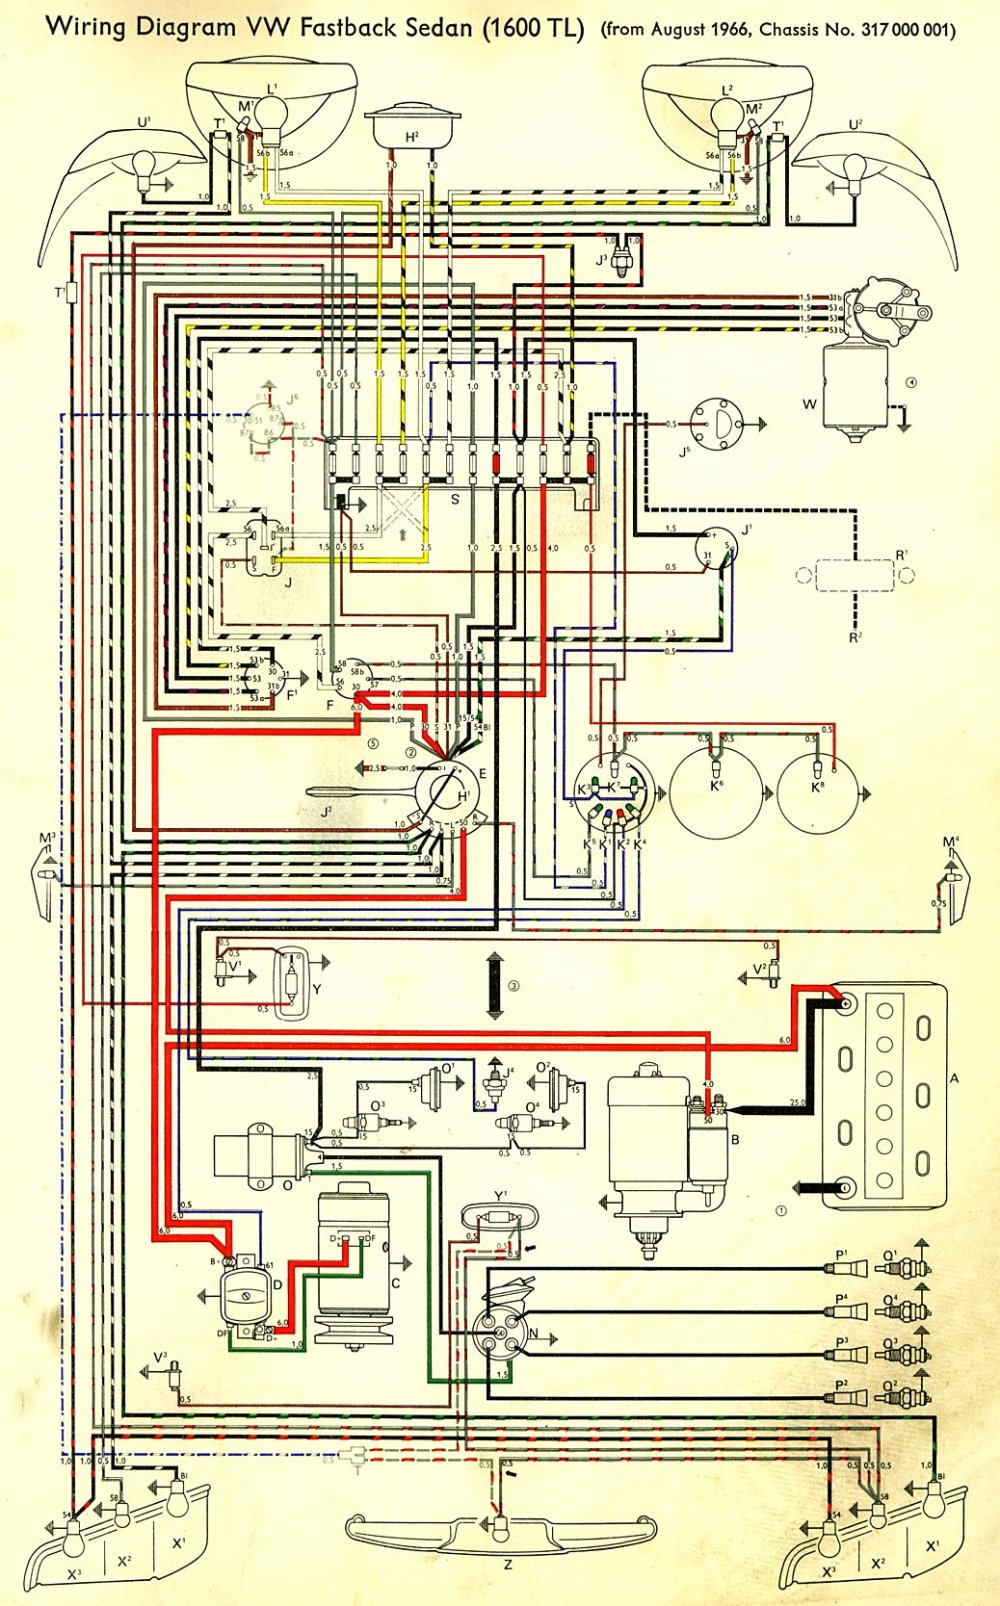 medium resolution of 1966 vw wiring diagram wiring diagram centre67 vw wiring harness wiring diagram datasource1967 vw wiring harness